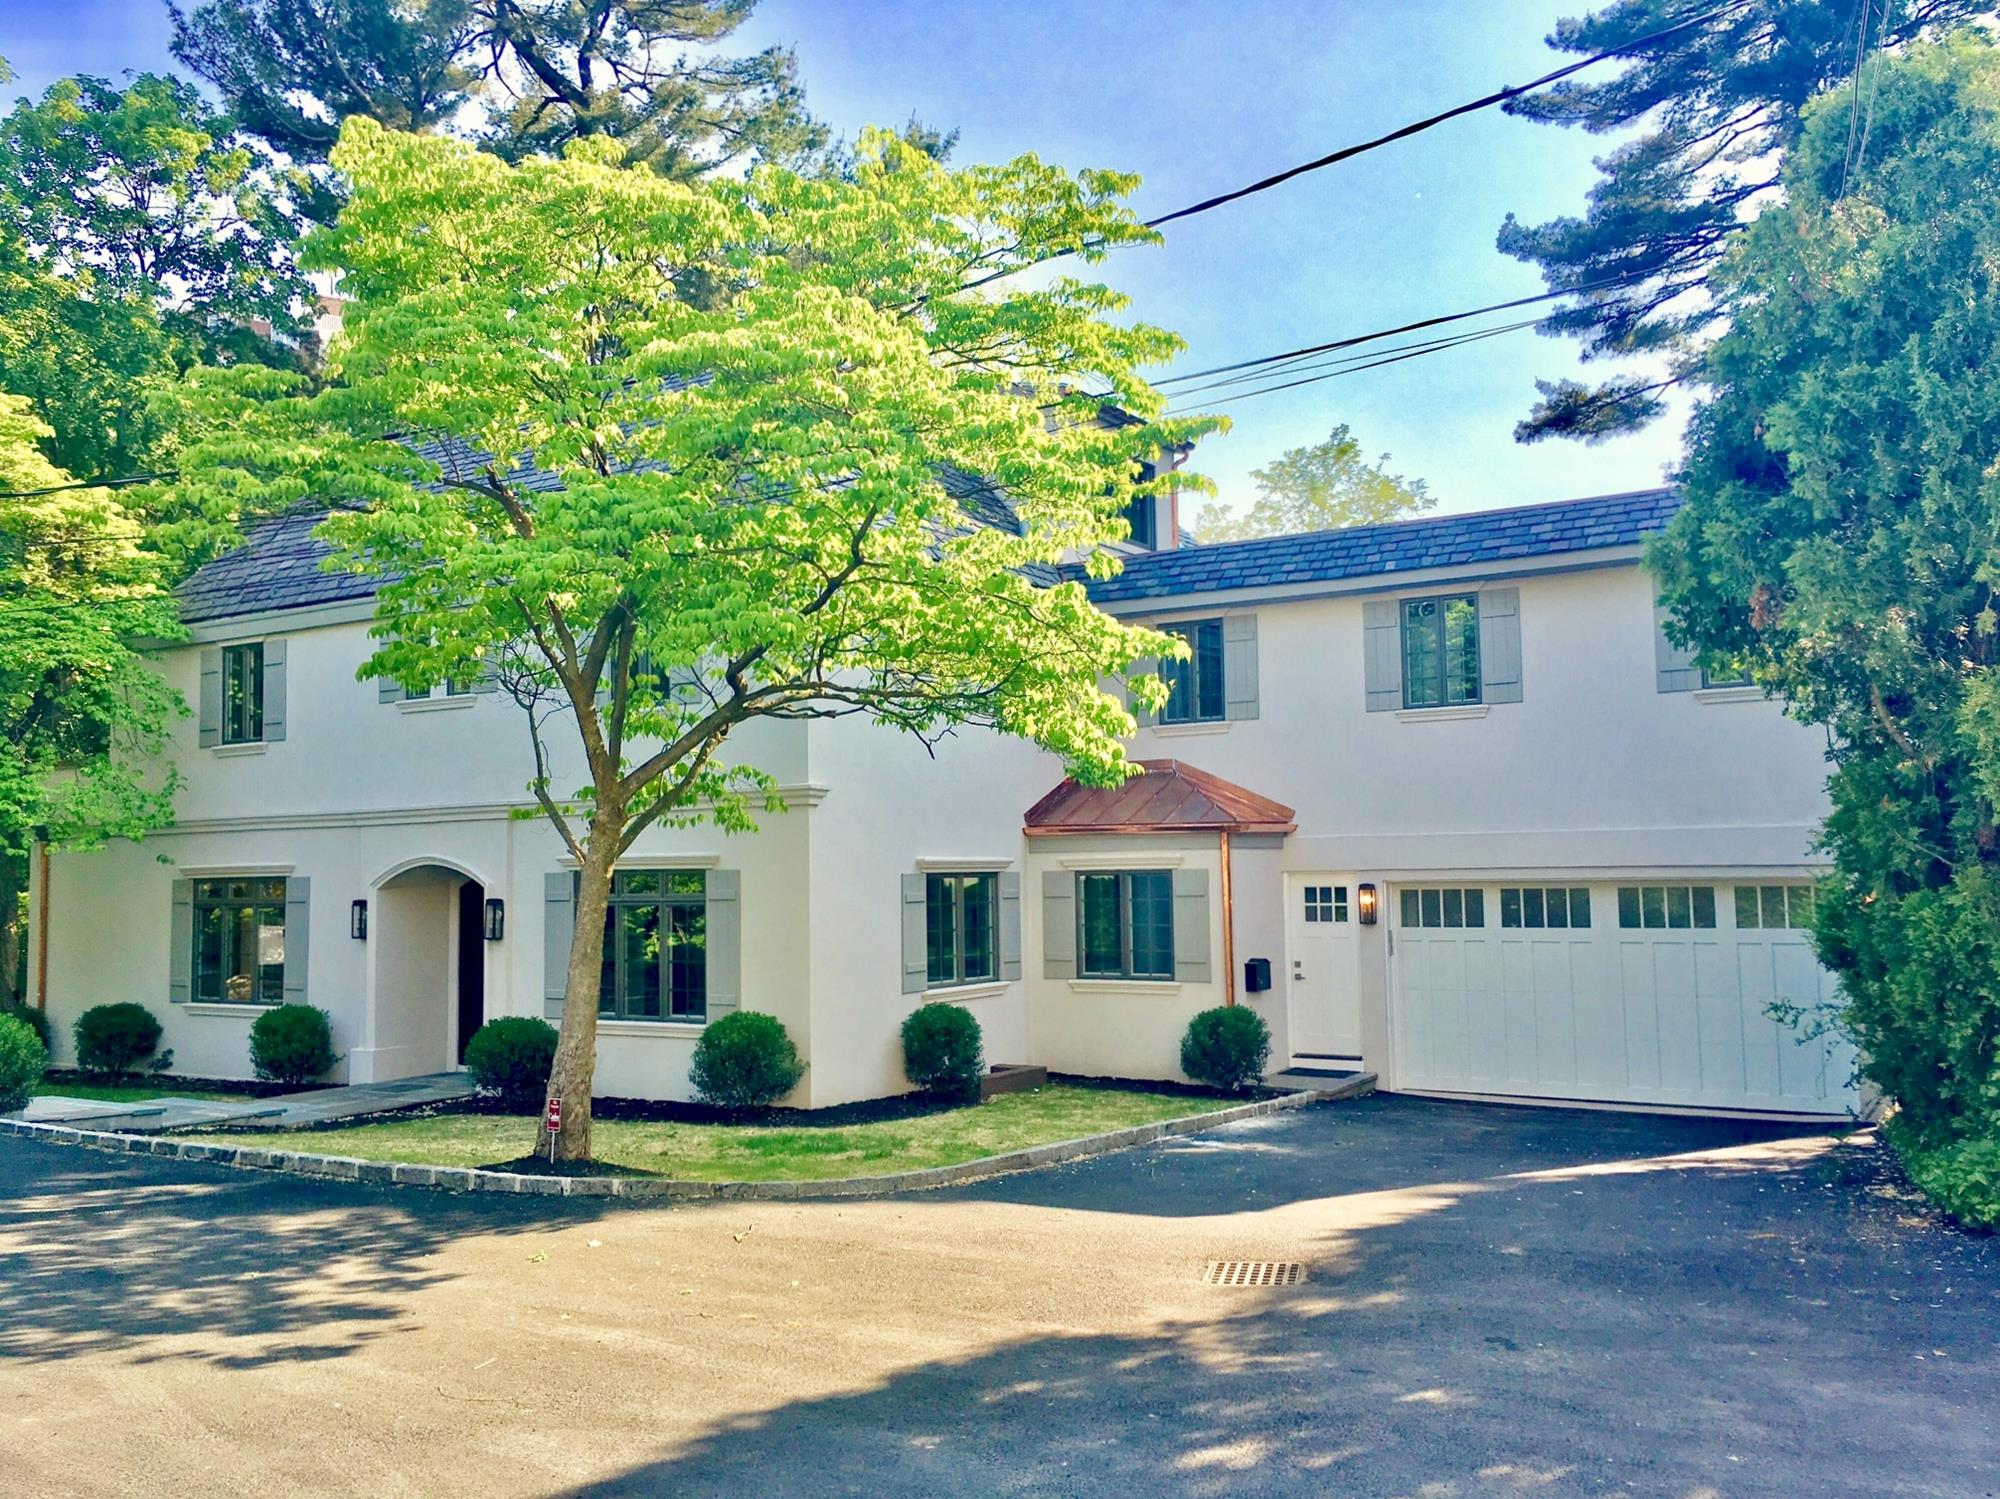 ESTATE AREA: Newly Renovated 6-Bd. Stucco House w/ Level, Grassy Yard on Double Lot on Private Cul-de-Sac